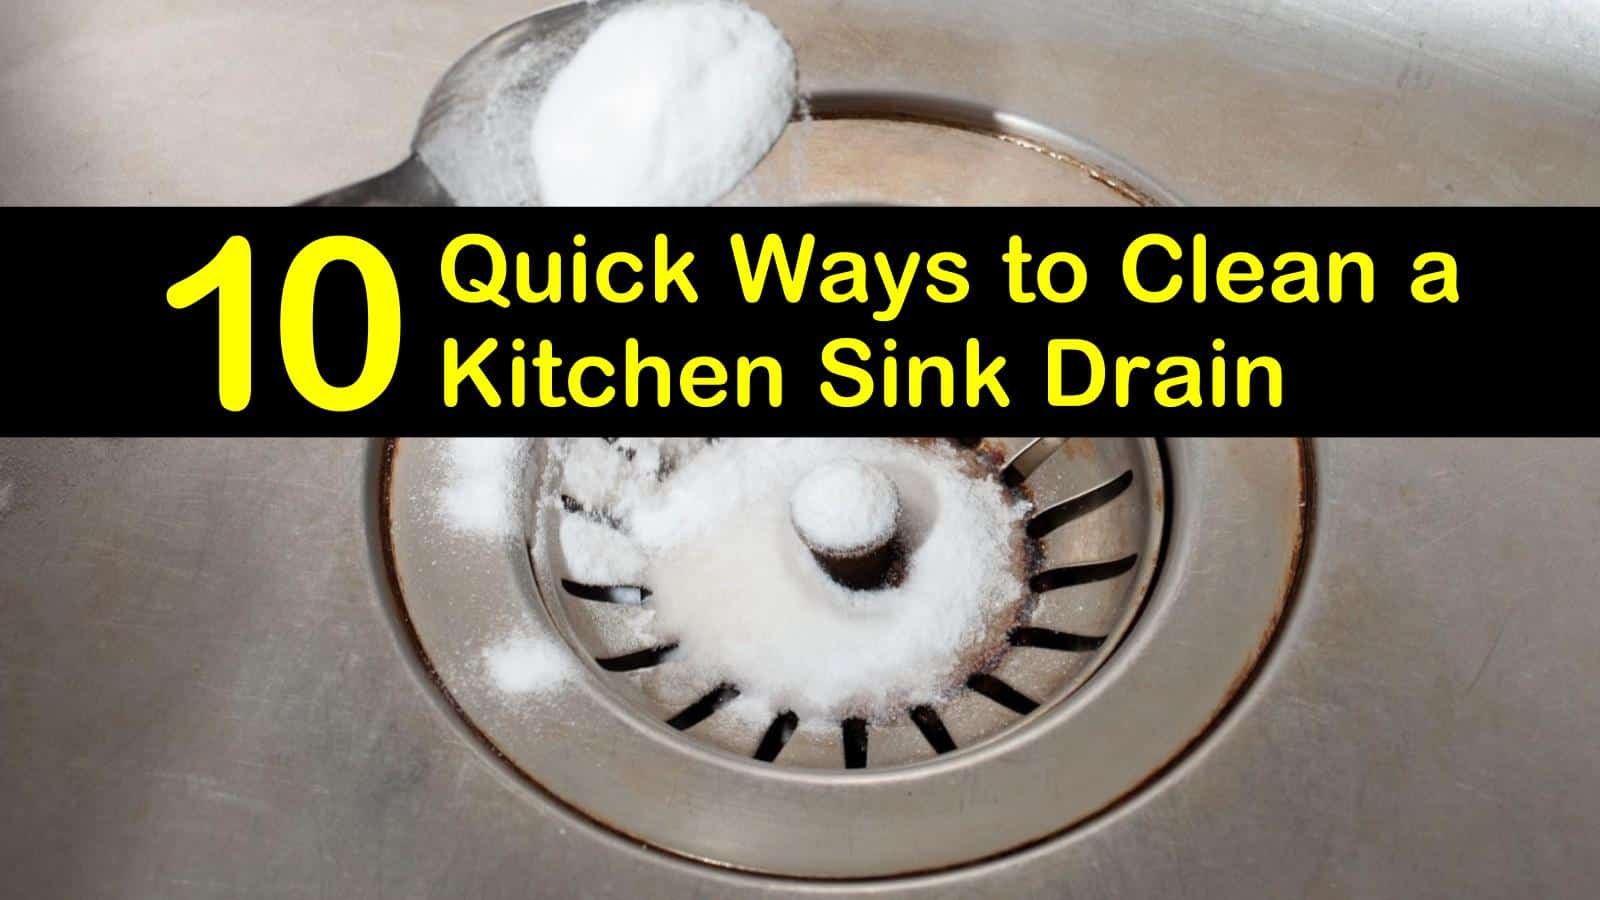 how to clean a kitchen sink drain titleimg1